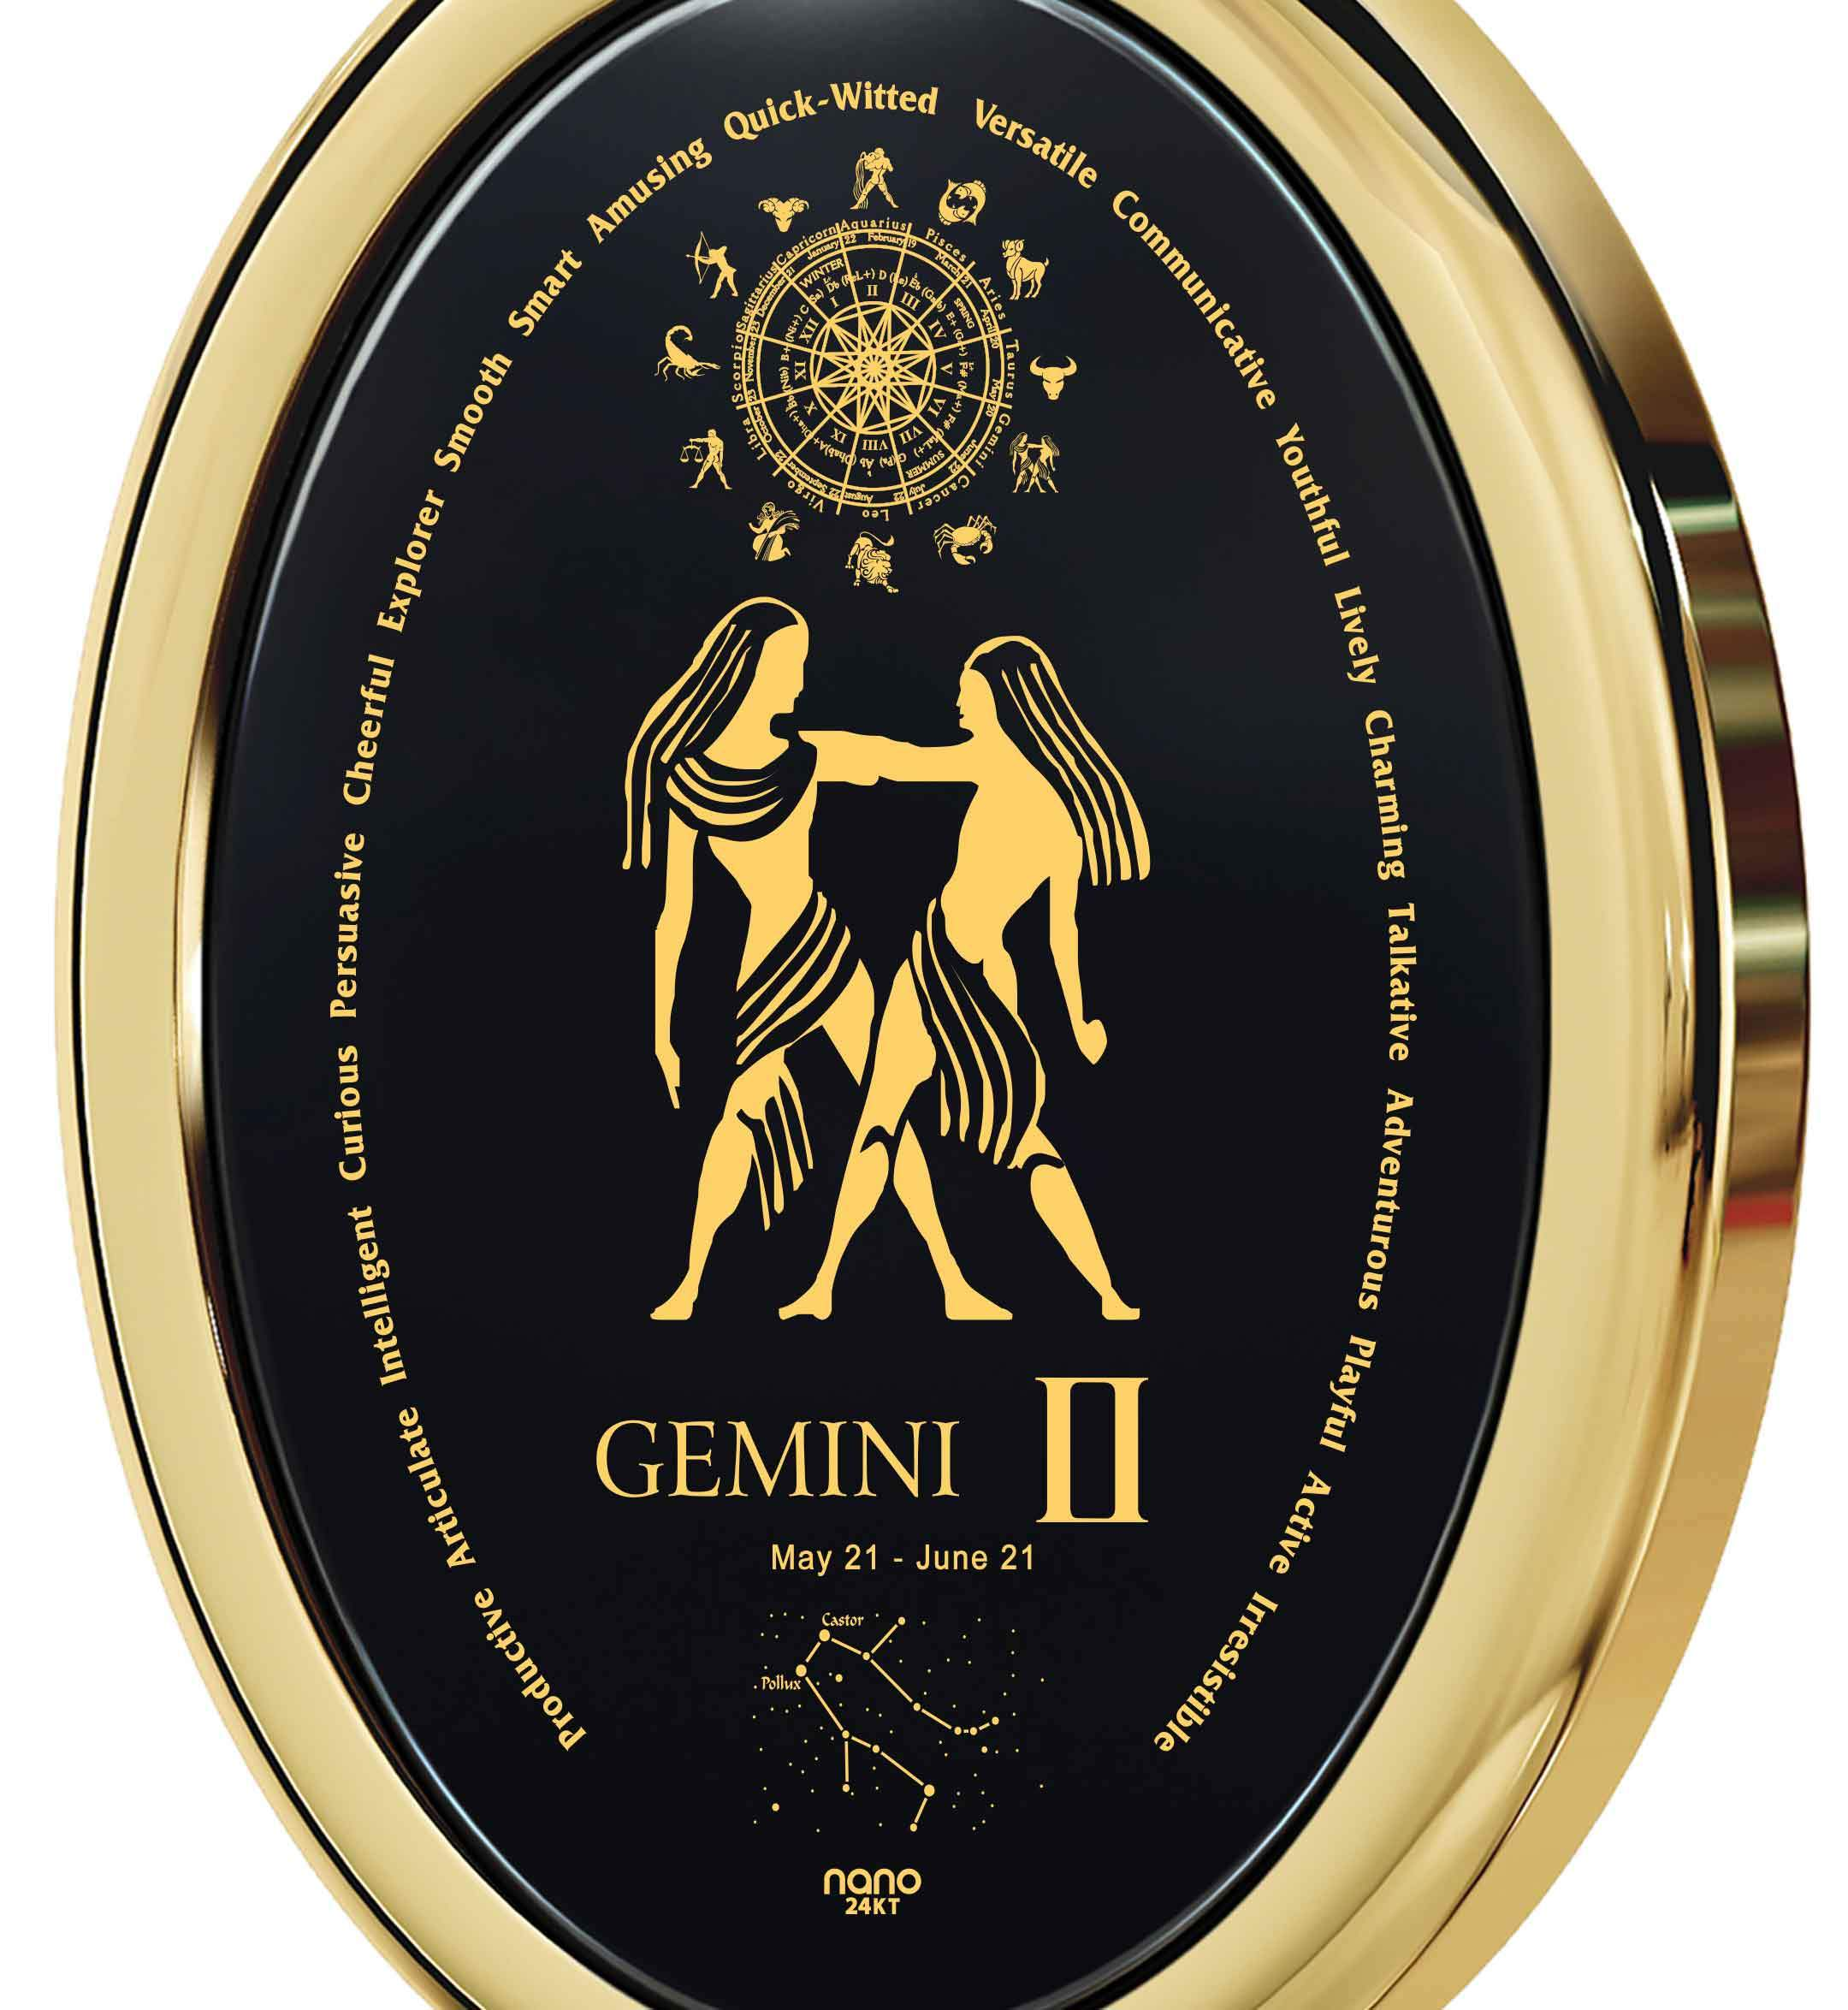 Wife Birthday Ideas: Gemini Characteristics, Engraved Necklaces, What to Buy My Girlfriend for Christmas